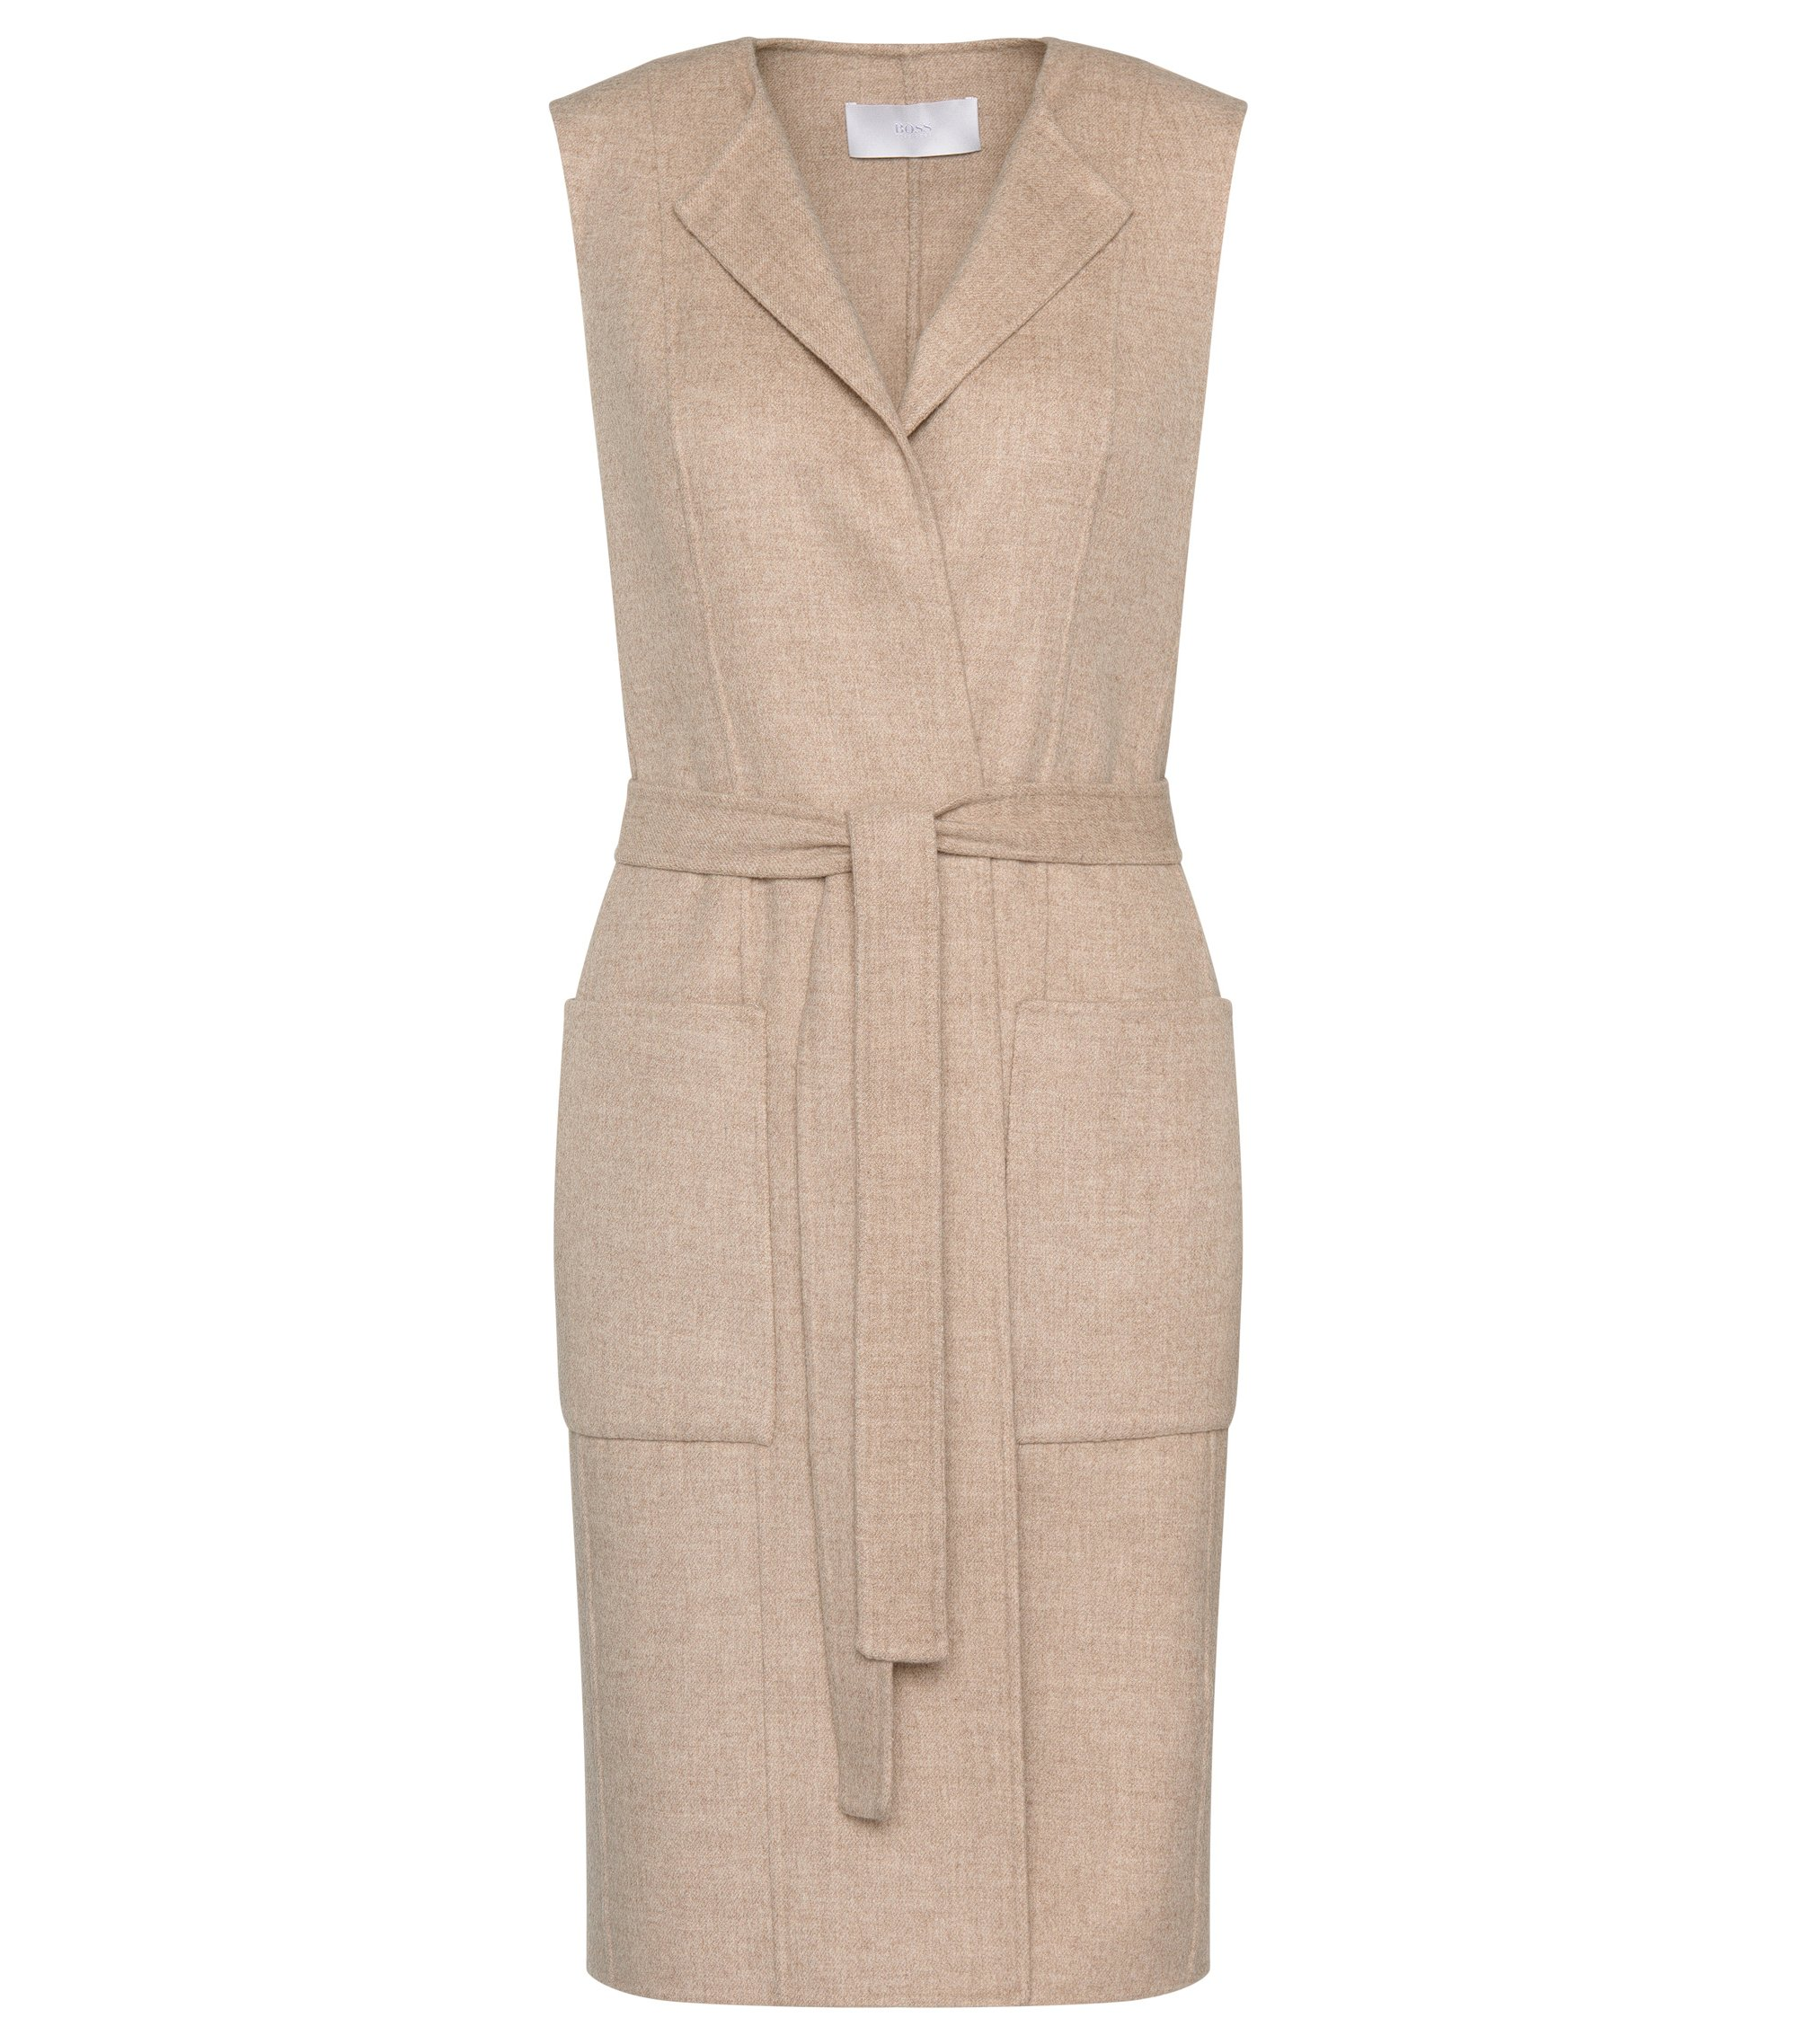 Wool Blend Belted Long Vest | Katsyna, Light Beige